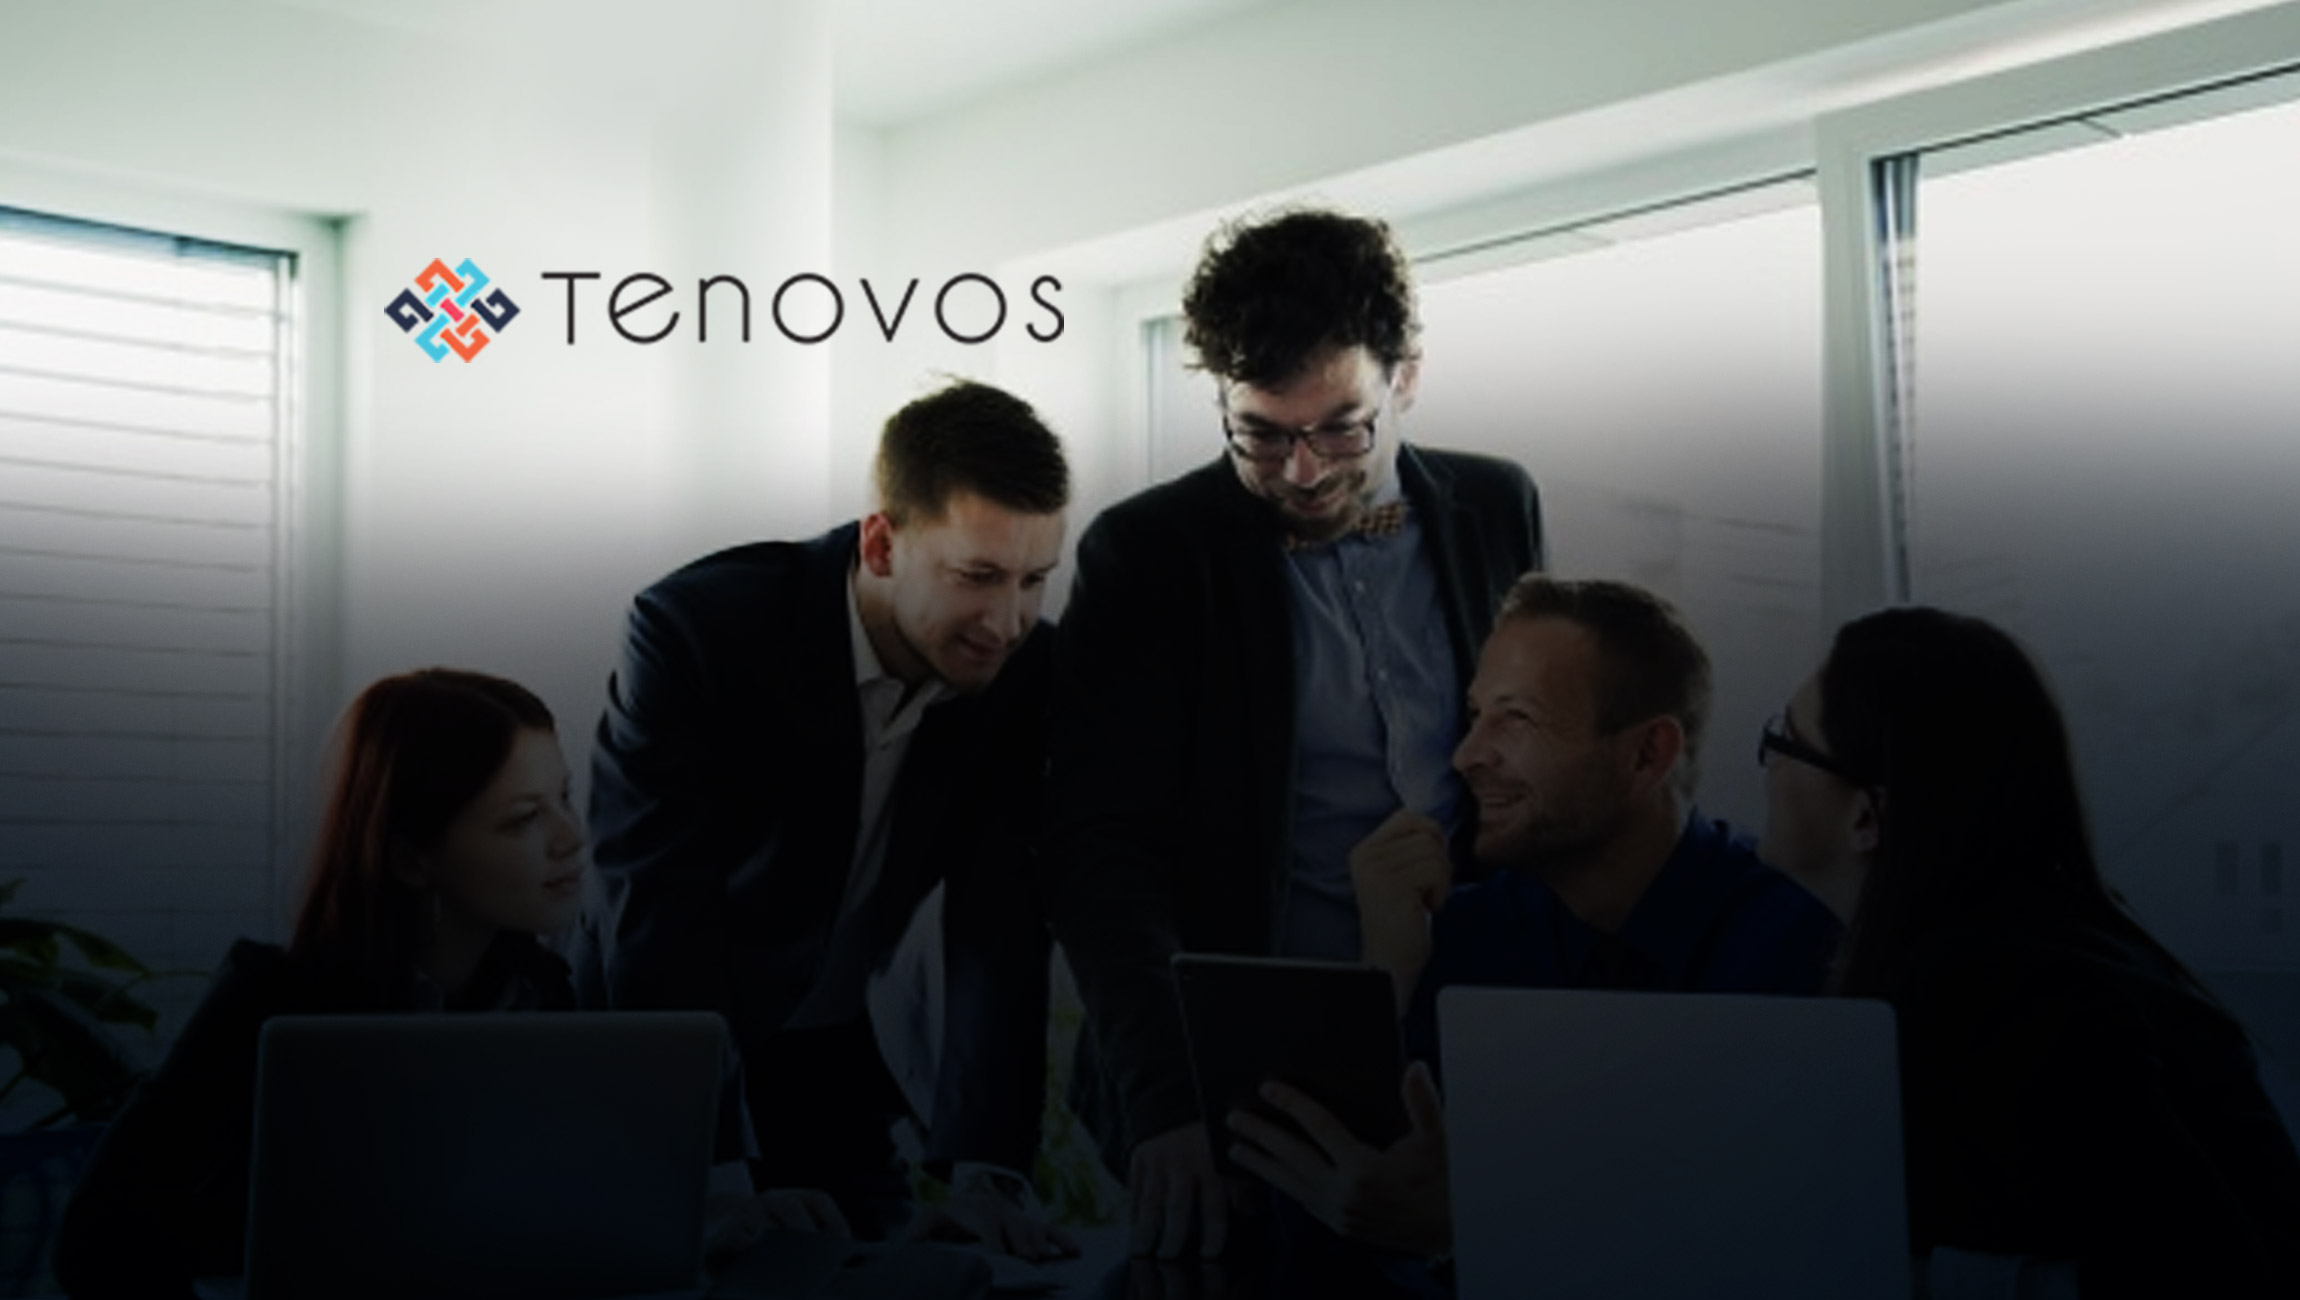 Tenovos Builds Out Leadership Team with CPO, CTO and Chairman of the Board